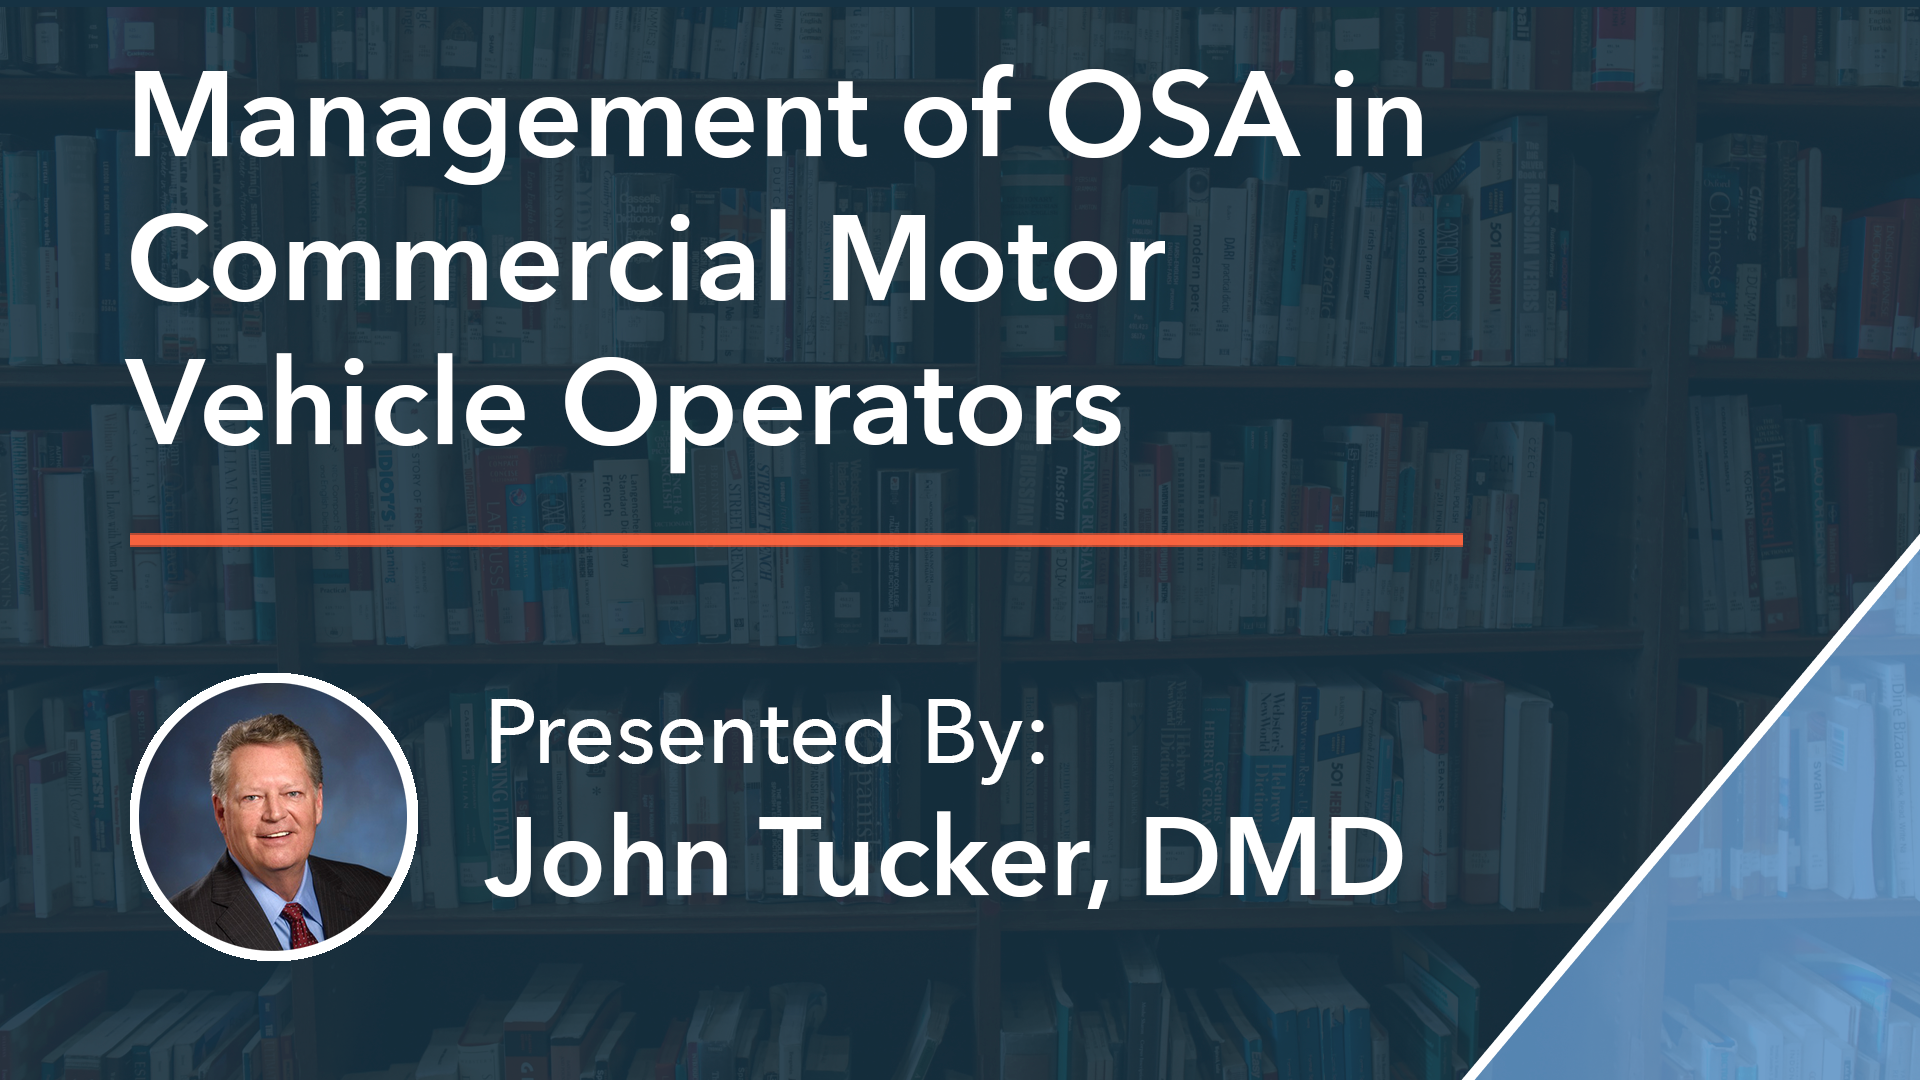 Management of OSA in Commercial Motor Vehicle Operators Dr John Tucker